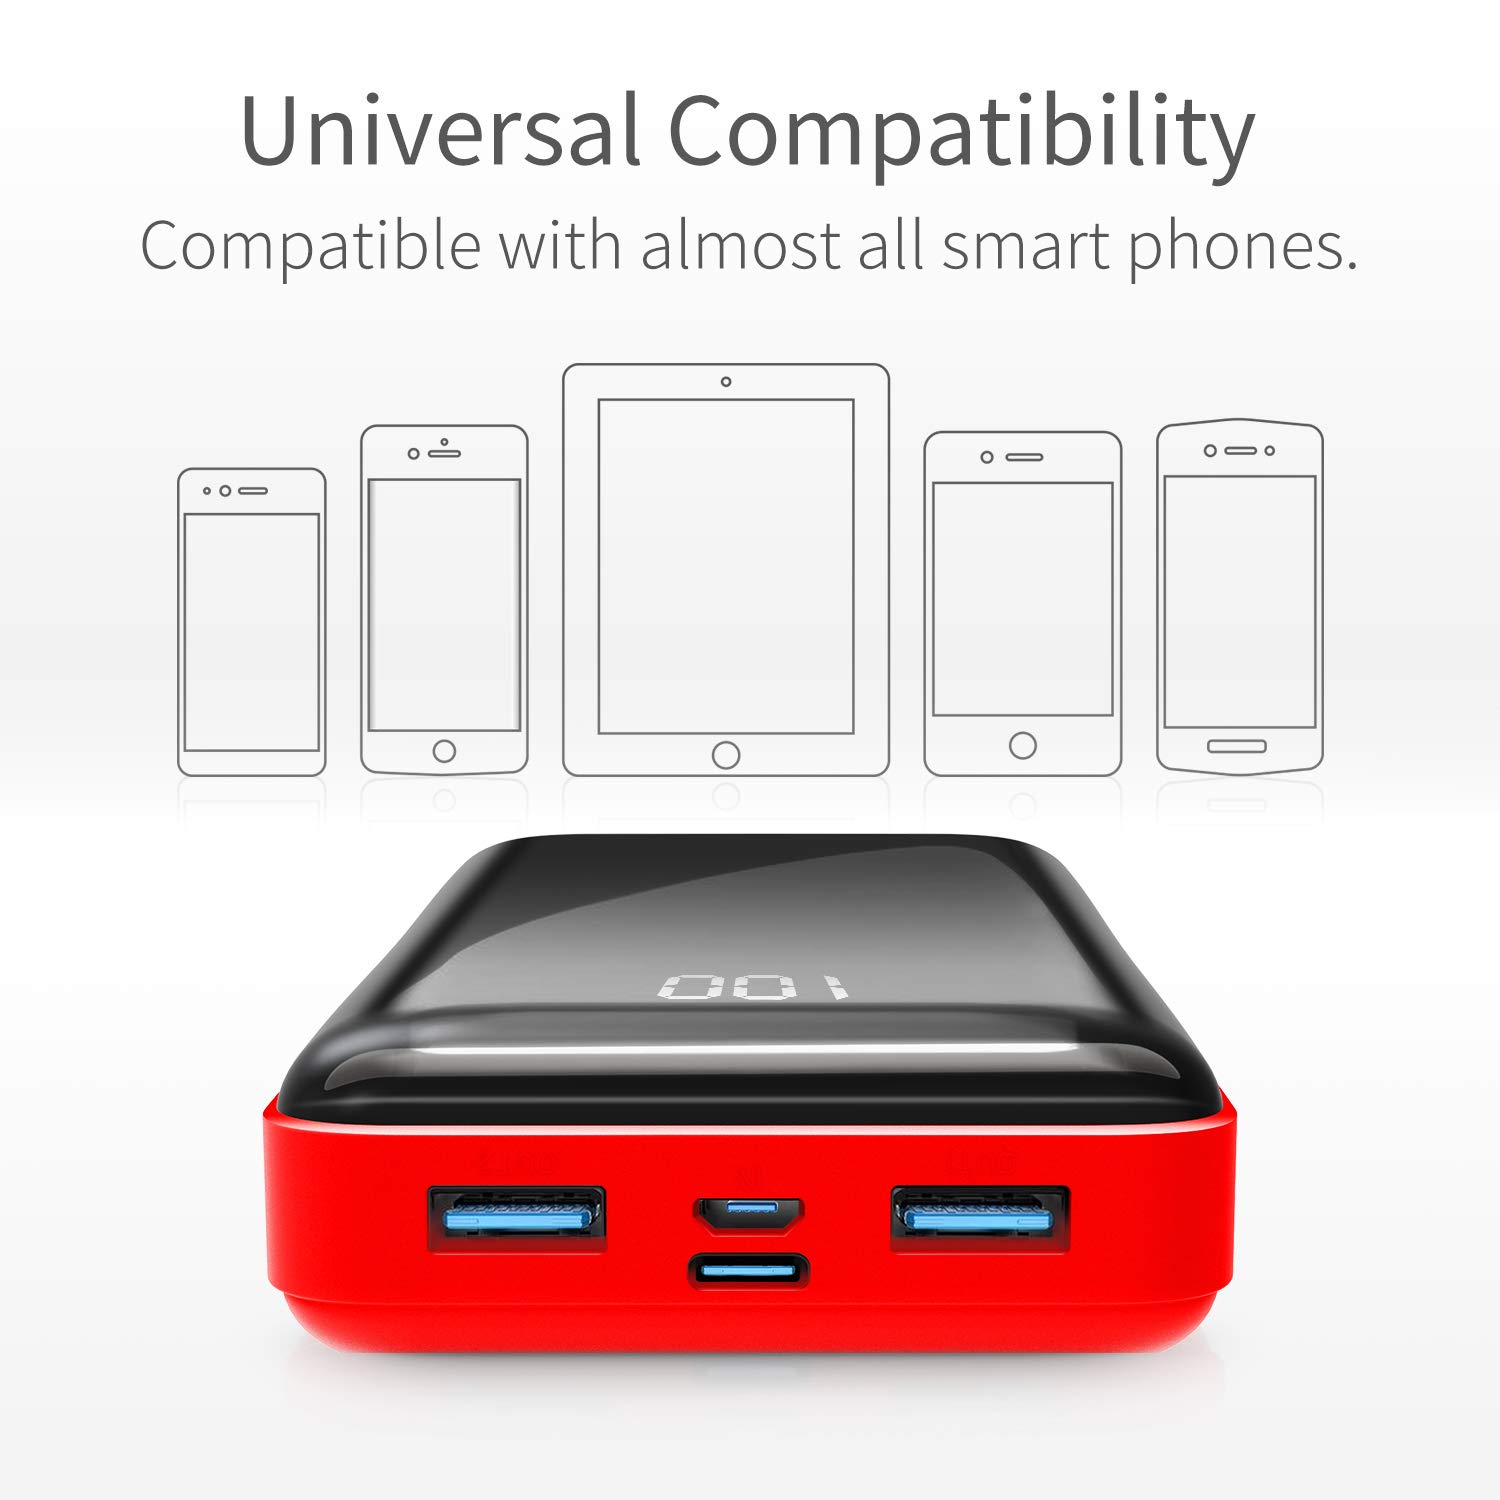 Portable Charger Power Bank 26800mAh Horcol External Battery Pack 2 Output Ports LCD Digital Display Compatible with Android Phone and Other Smart Phone